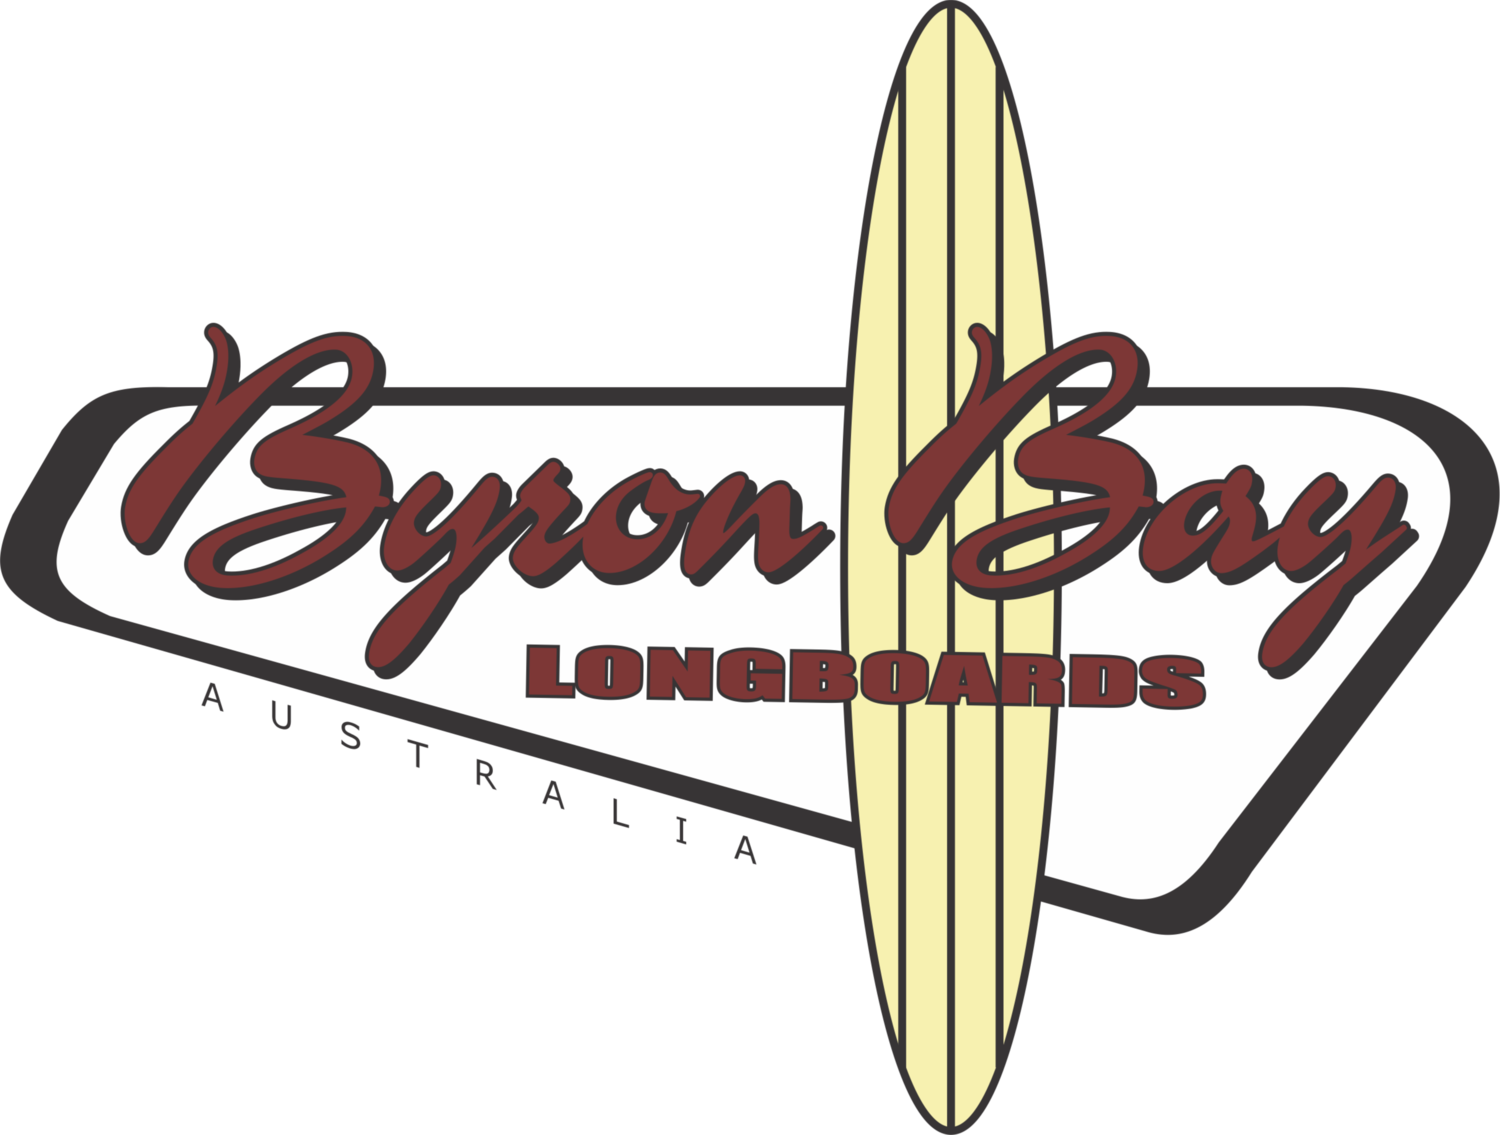 Byron Bay Longboards. Locally owned & independent surf! Surf and skate hardware & software, swim and surfwear and more.